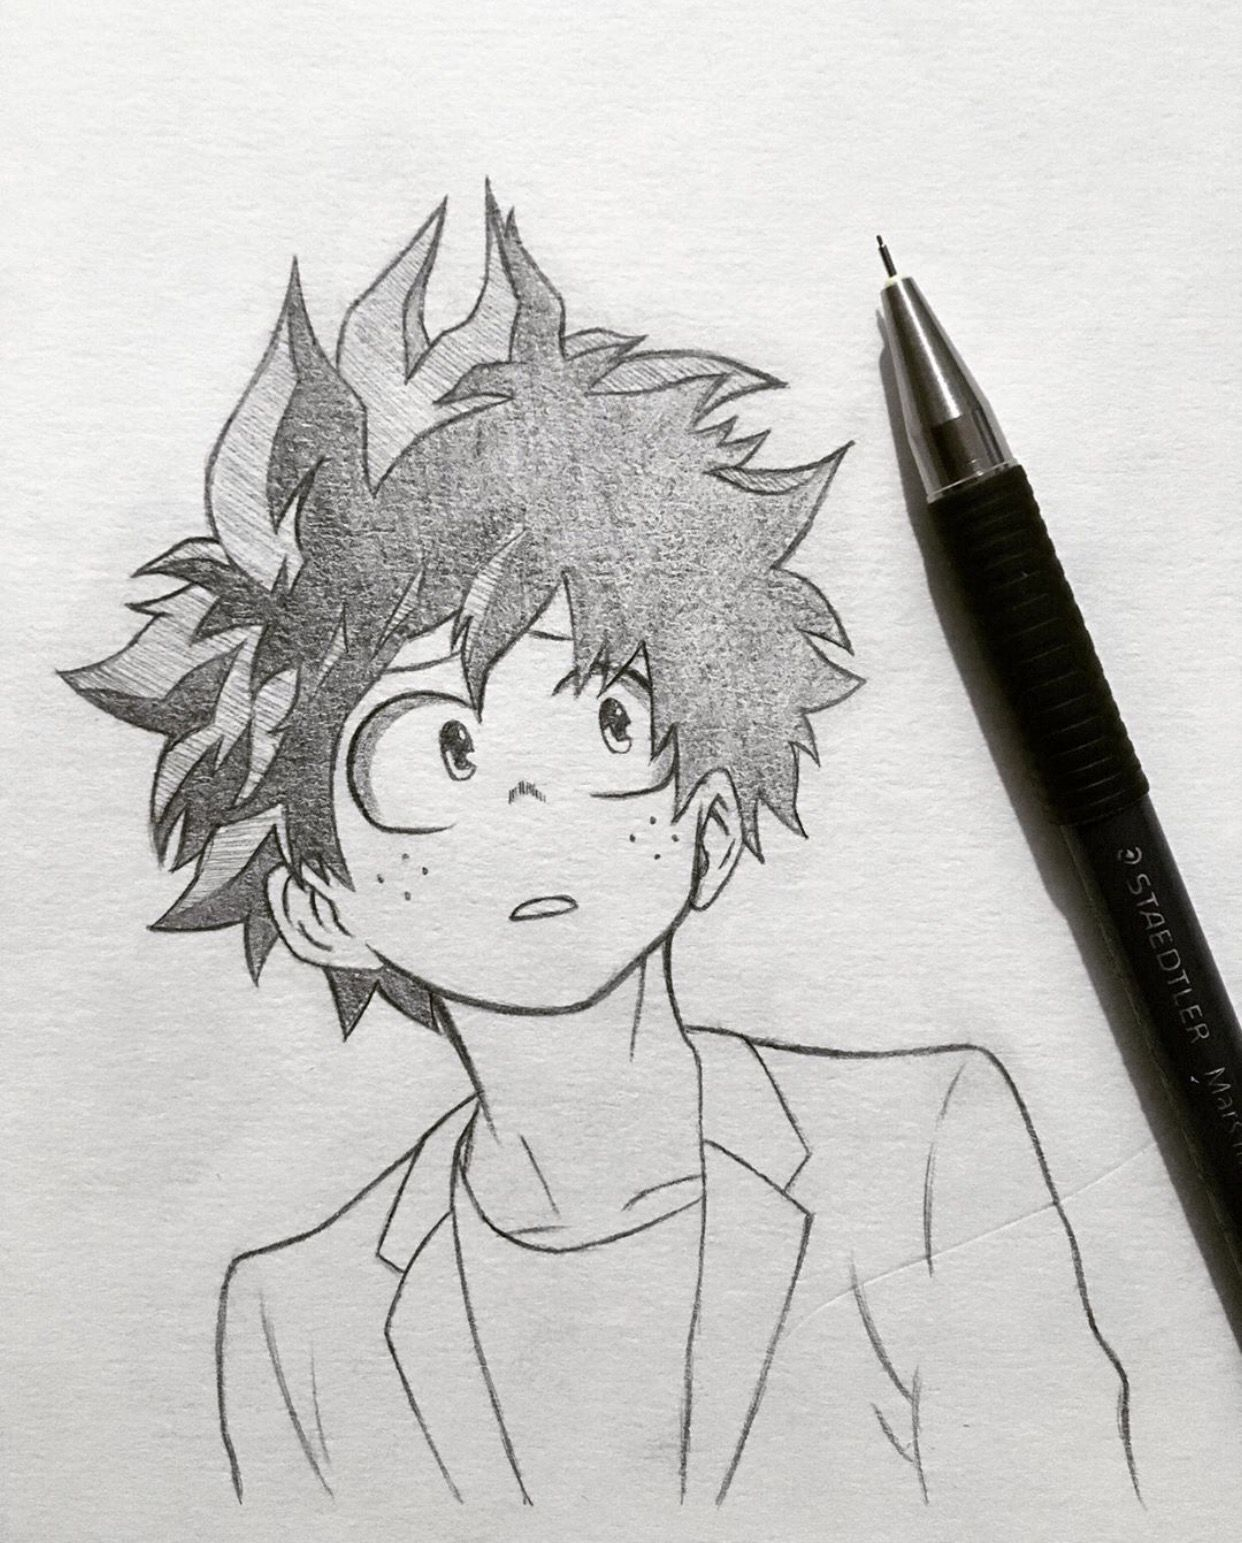 Deku By Infinity Draw Visit Our Website For More Anime And Animeart M Anime Character Drawing Anime Drawings Sketches Anime Boy Sketch